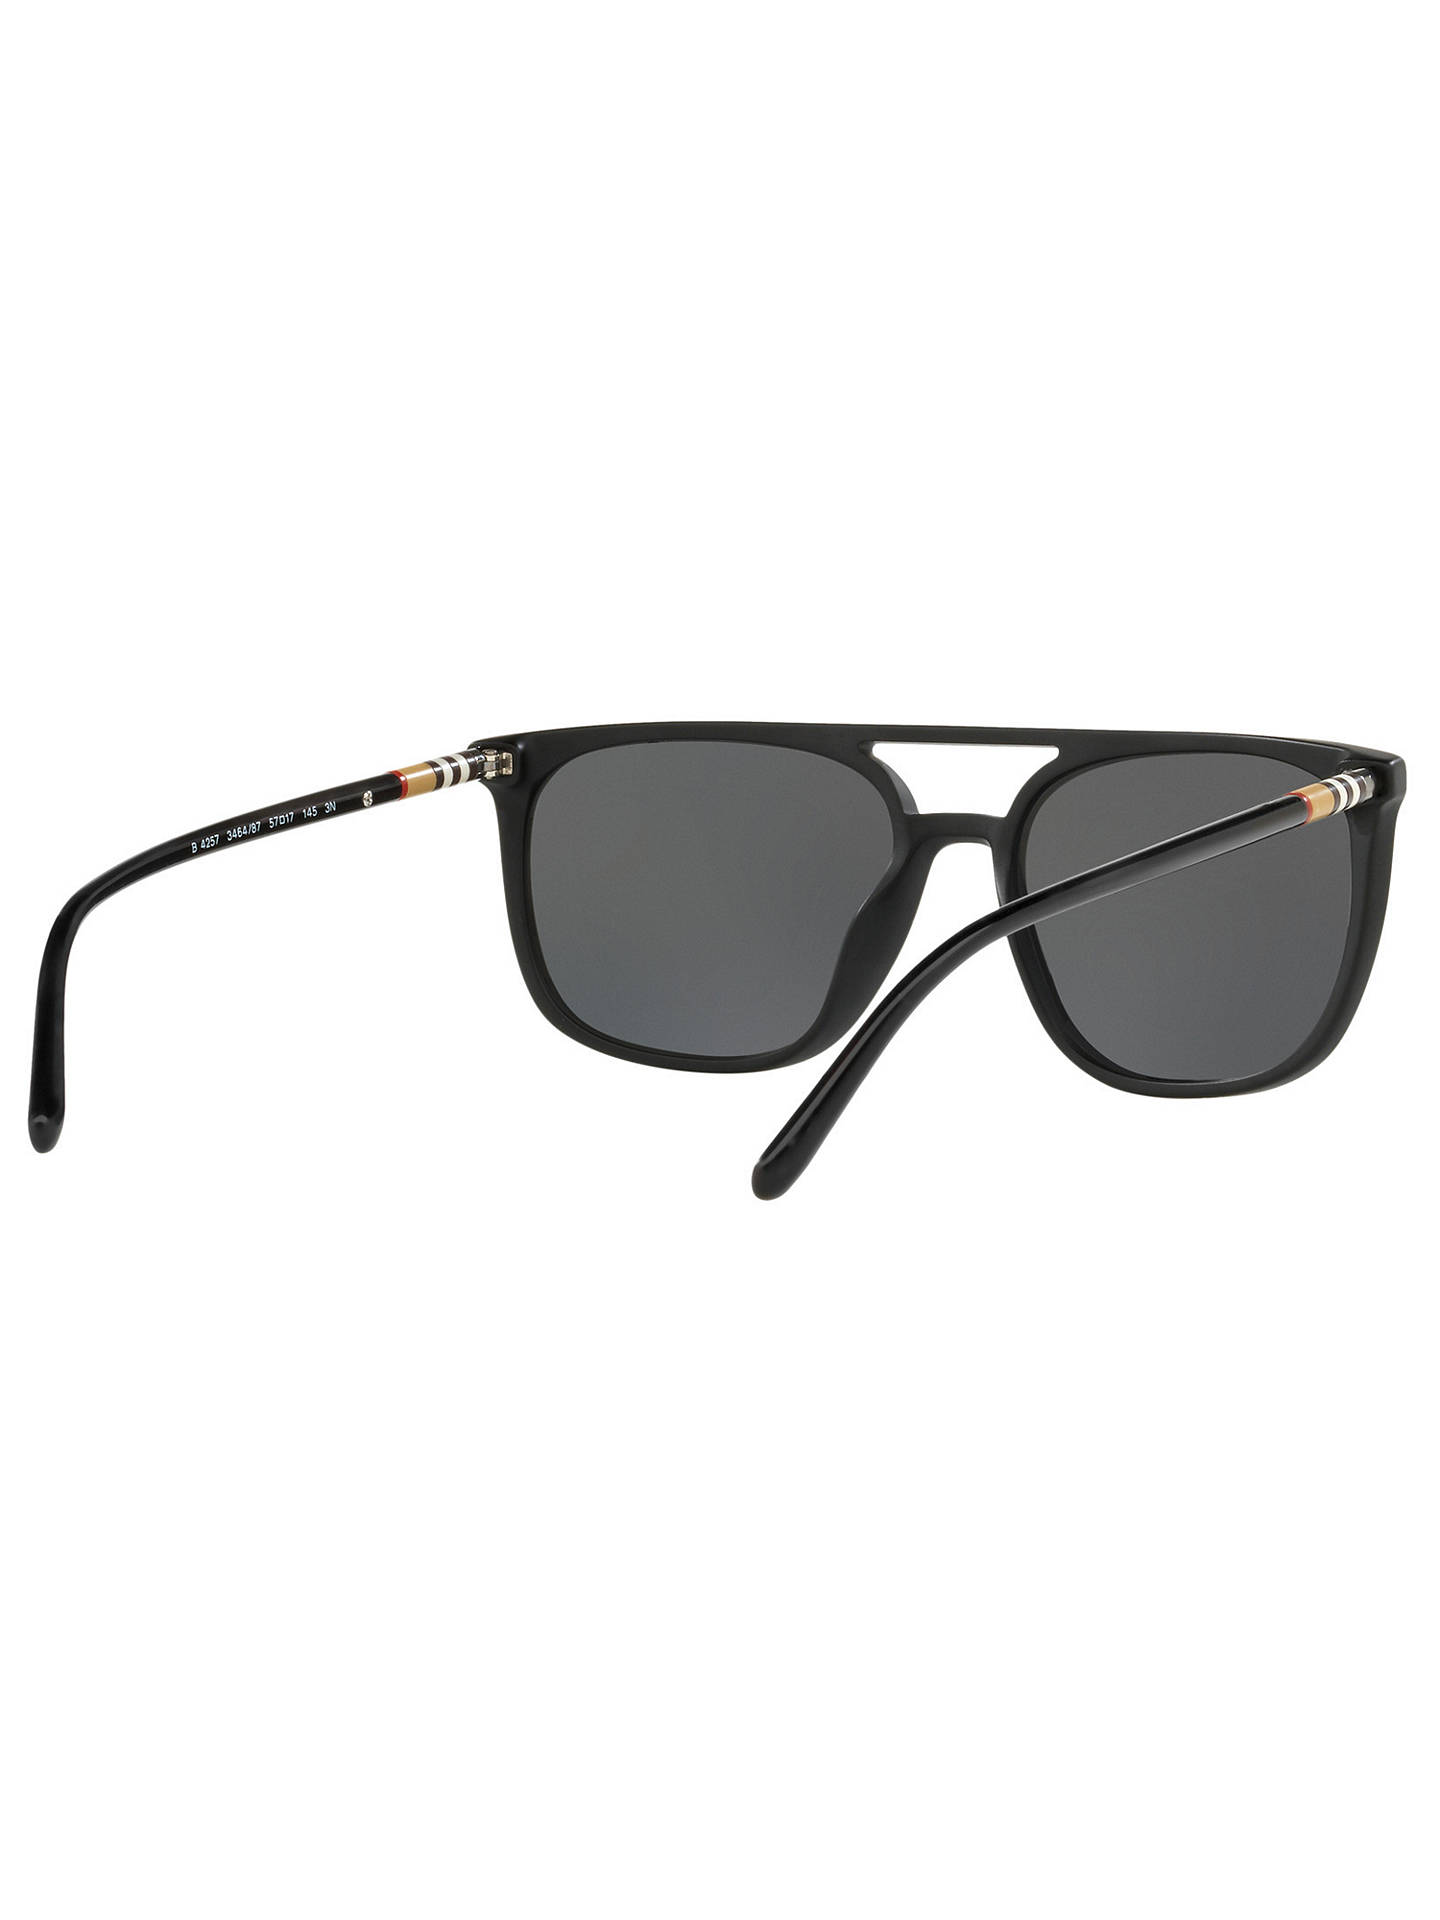 a670aa00b40 ... Buy Burberry BE4257 Mens s Square Sunglasses